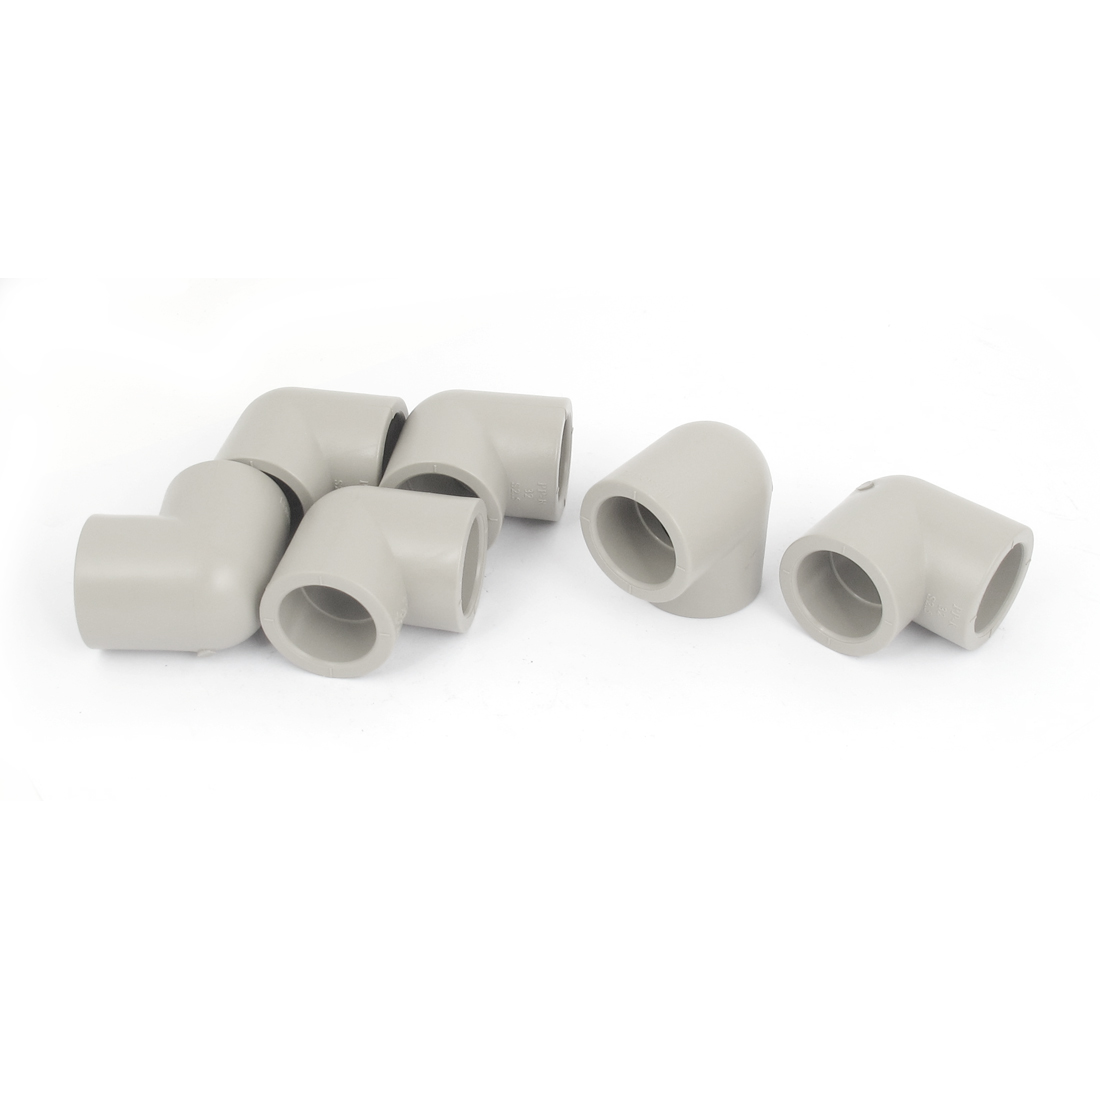 90 Degree Elbow PPR Pipe Connectors Gray 32mm Inner Diameter 6 Pcs